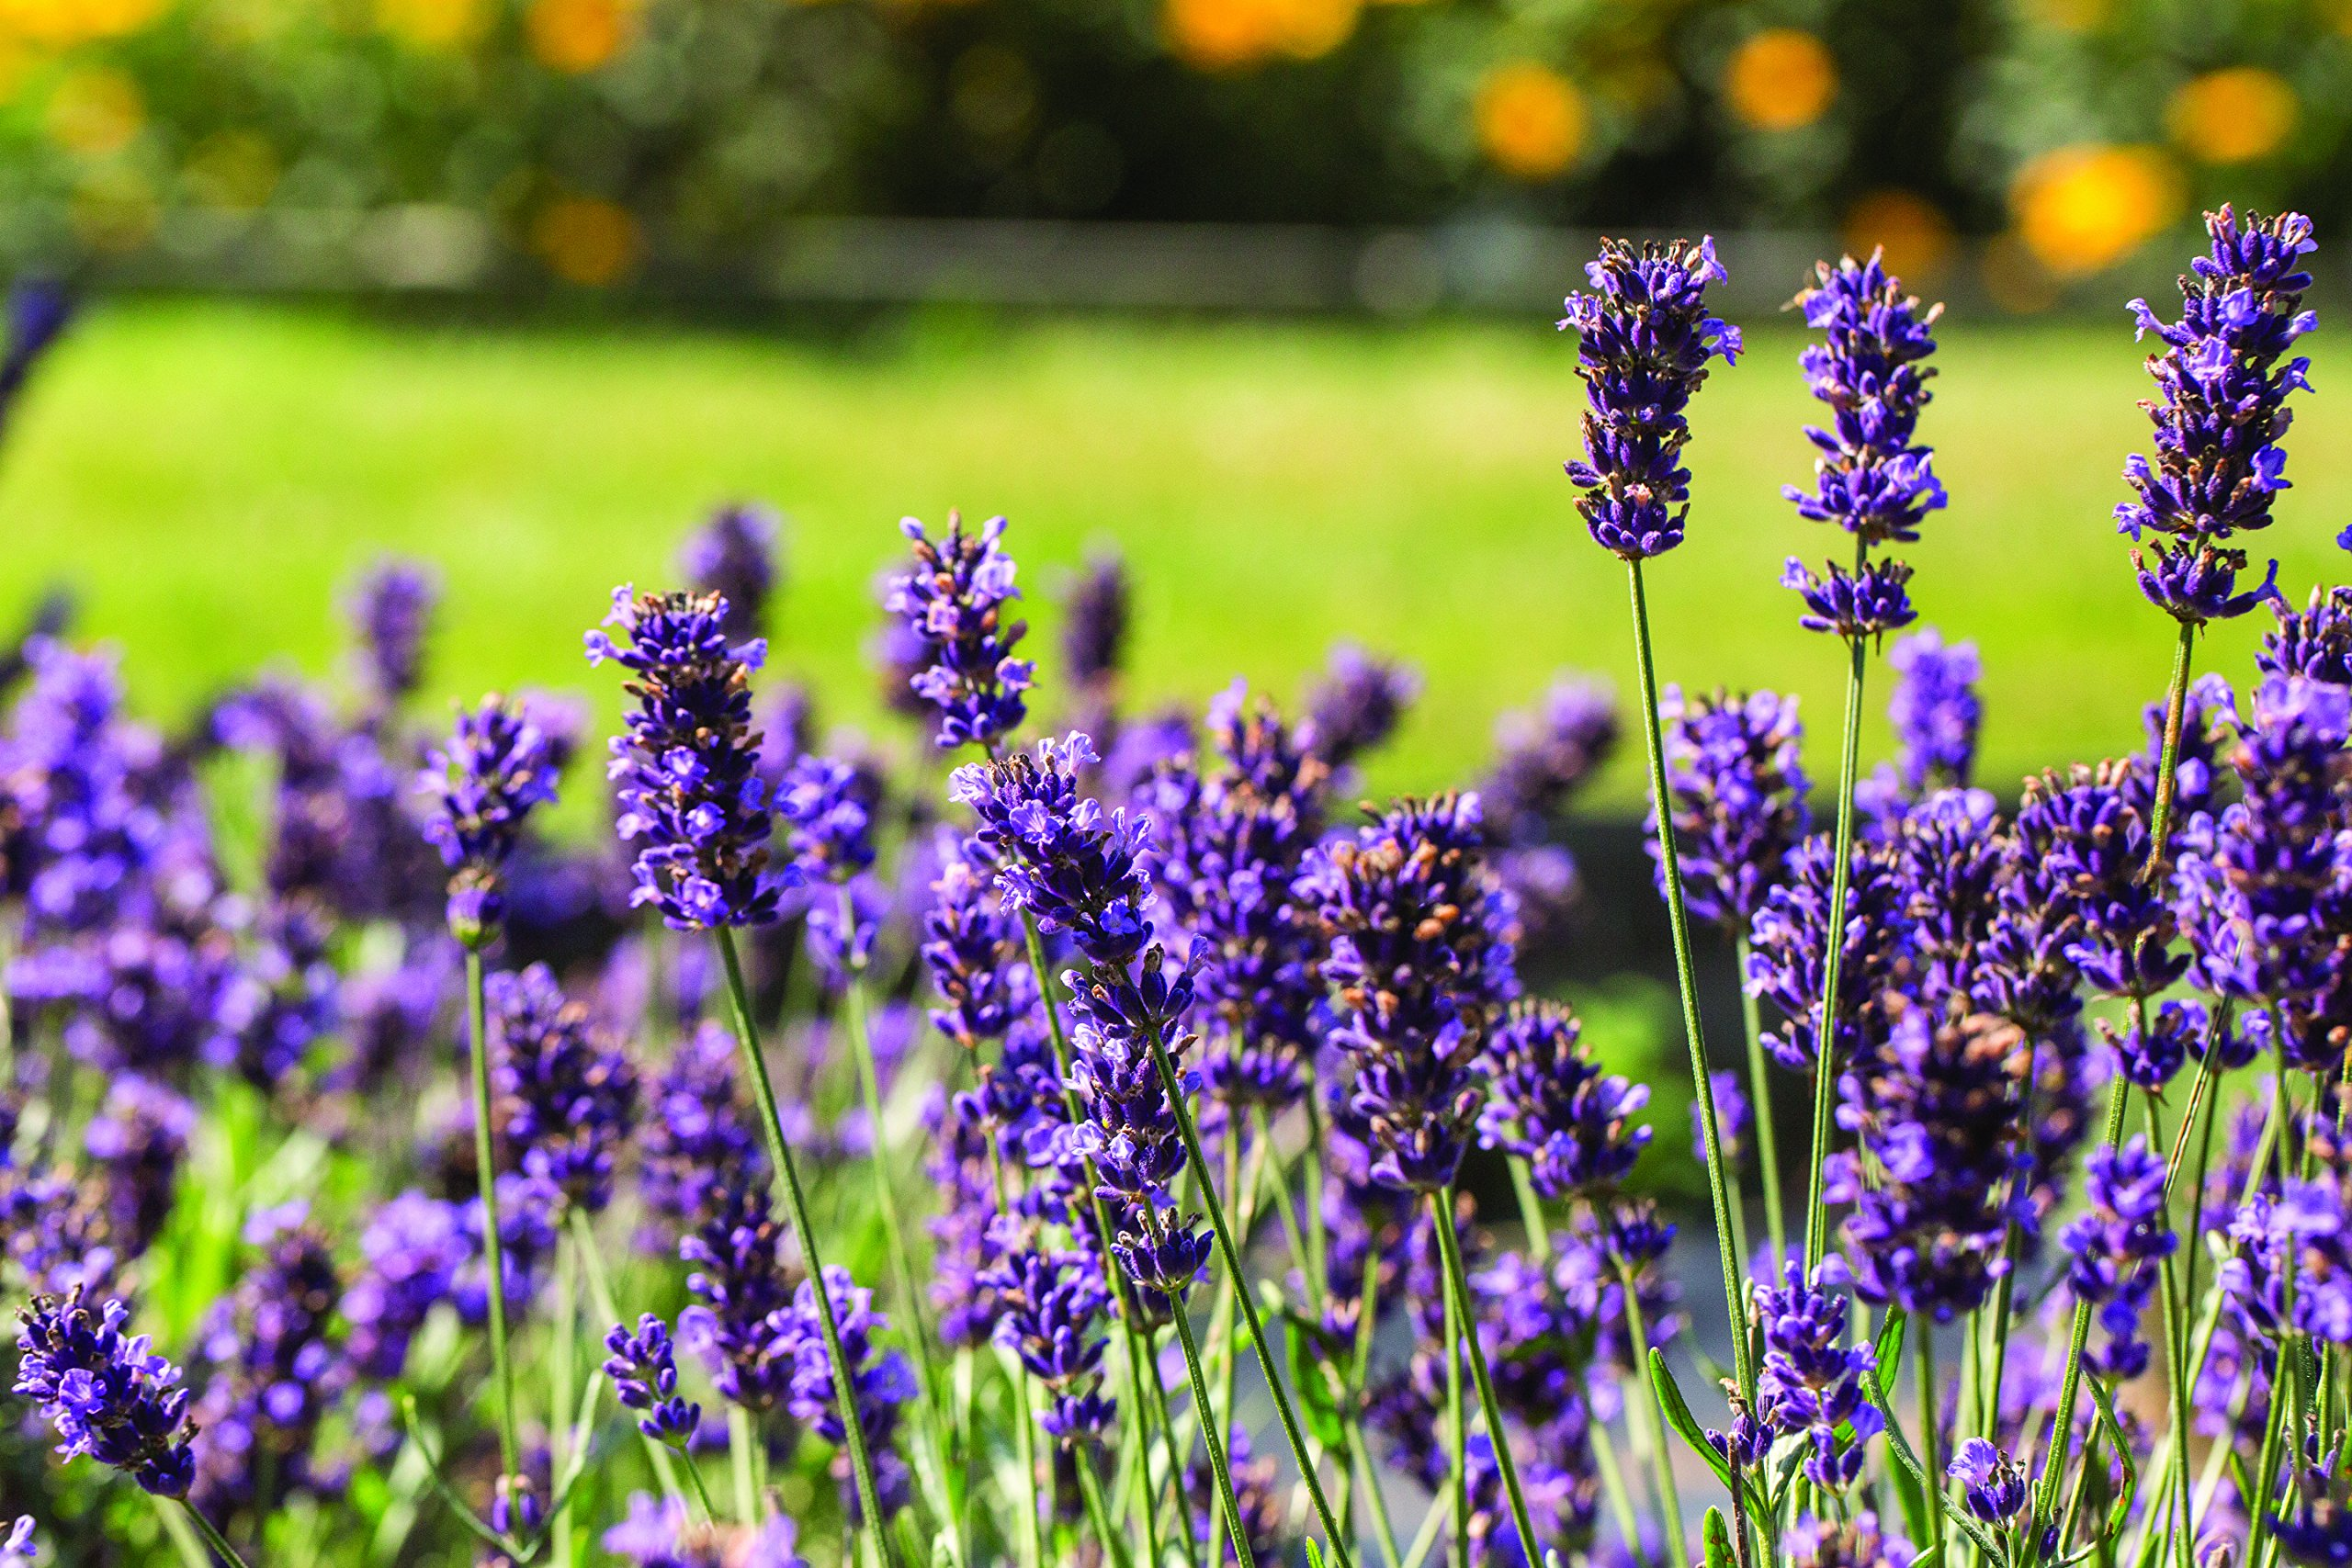 Burpee Lavender 'Superblue' Fragrant Flowers and Foliage, Four 4'' pots by Burpee (Image #4)